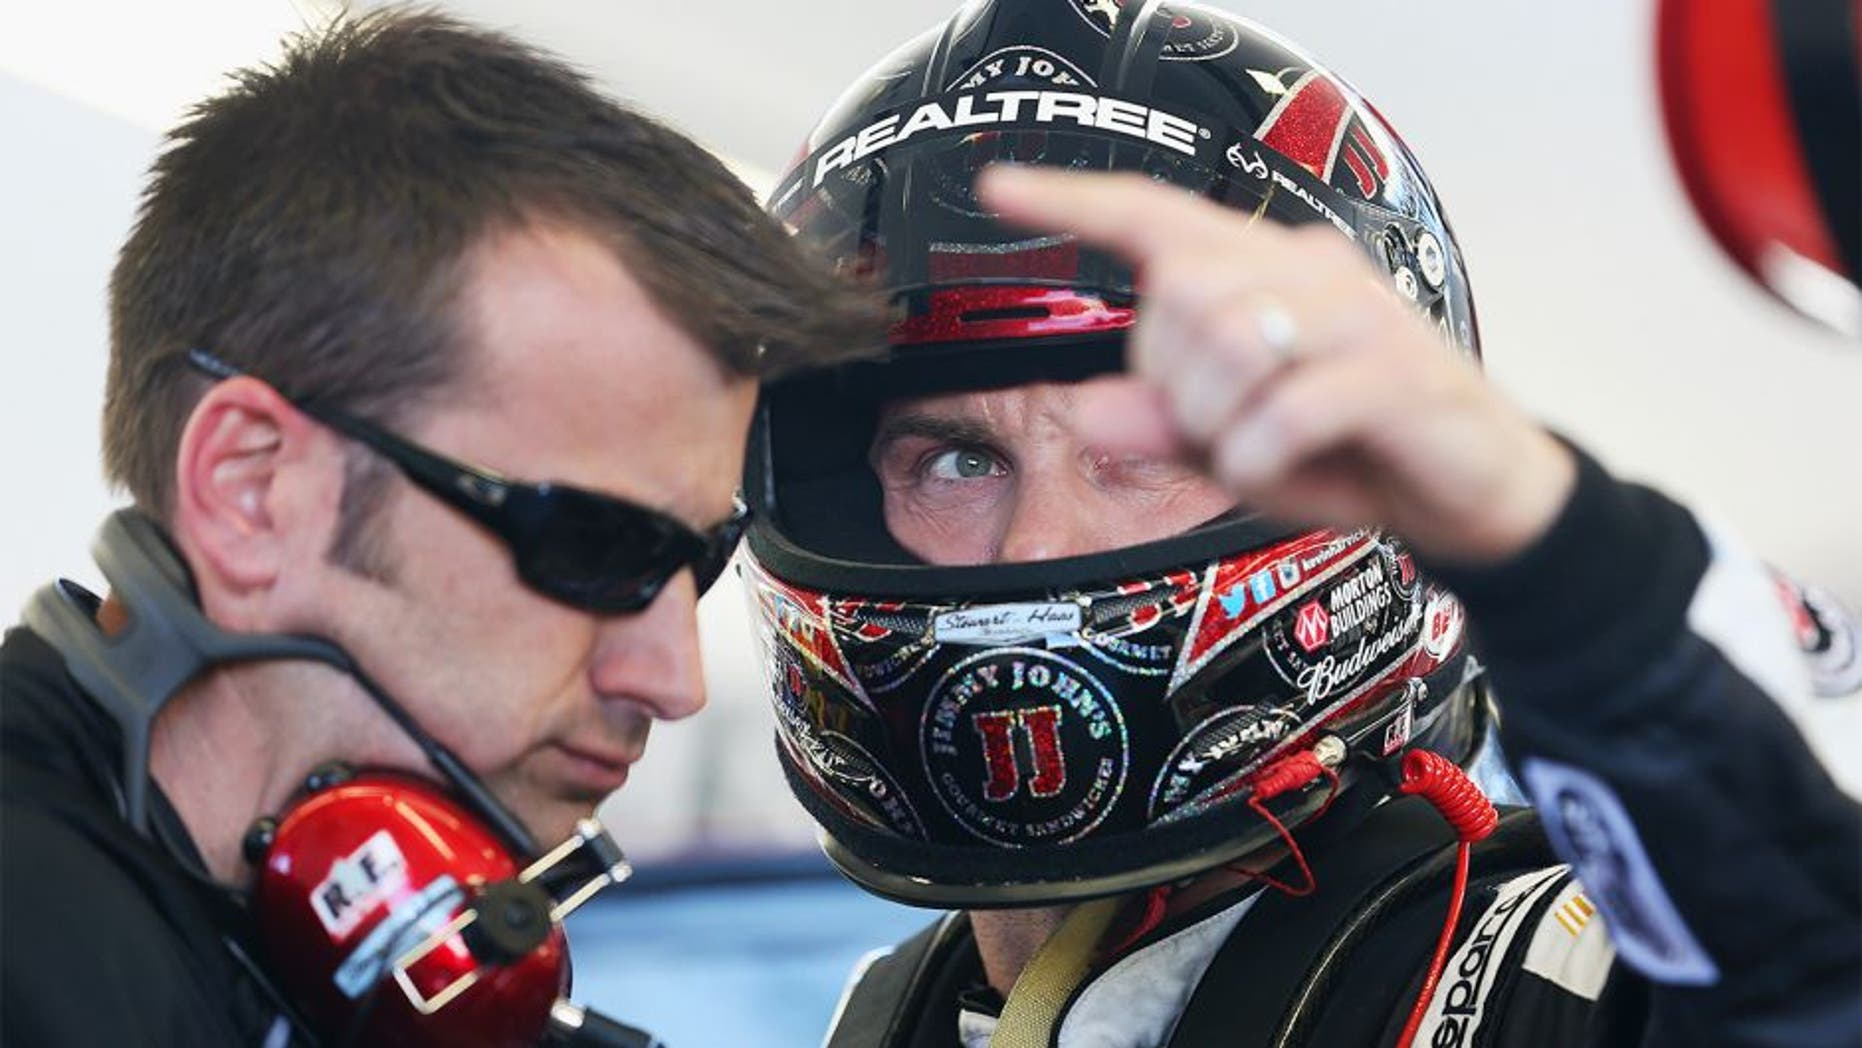 LAS VEGAS, NV - MARCH 07: Kevin Harvick (right), driver of the #4 Jimmy John's Chevrolet, speaks with his crew chief Rodney Childers during practice for the NASCAR Sprint Cup Series Kobalt 400 at Las Vegas Motor Speedway on March 7, 2014 in Las Vegas, Nevada. (Photo by Nick Laham/Getty Images)